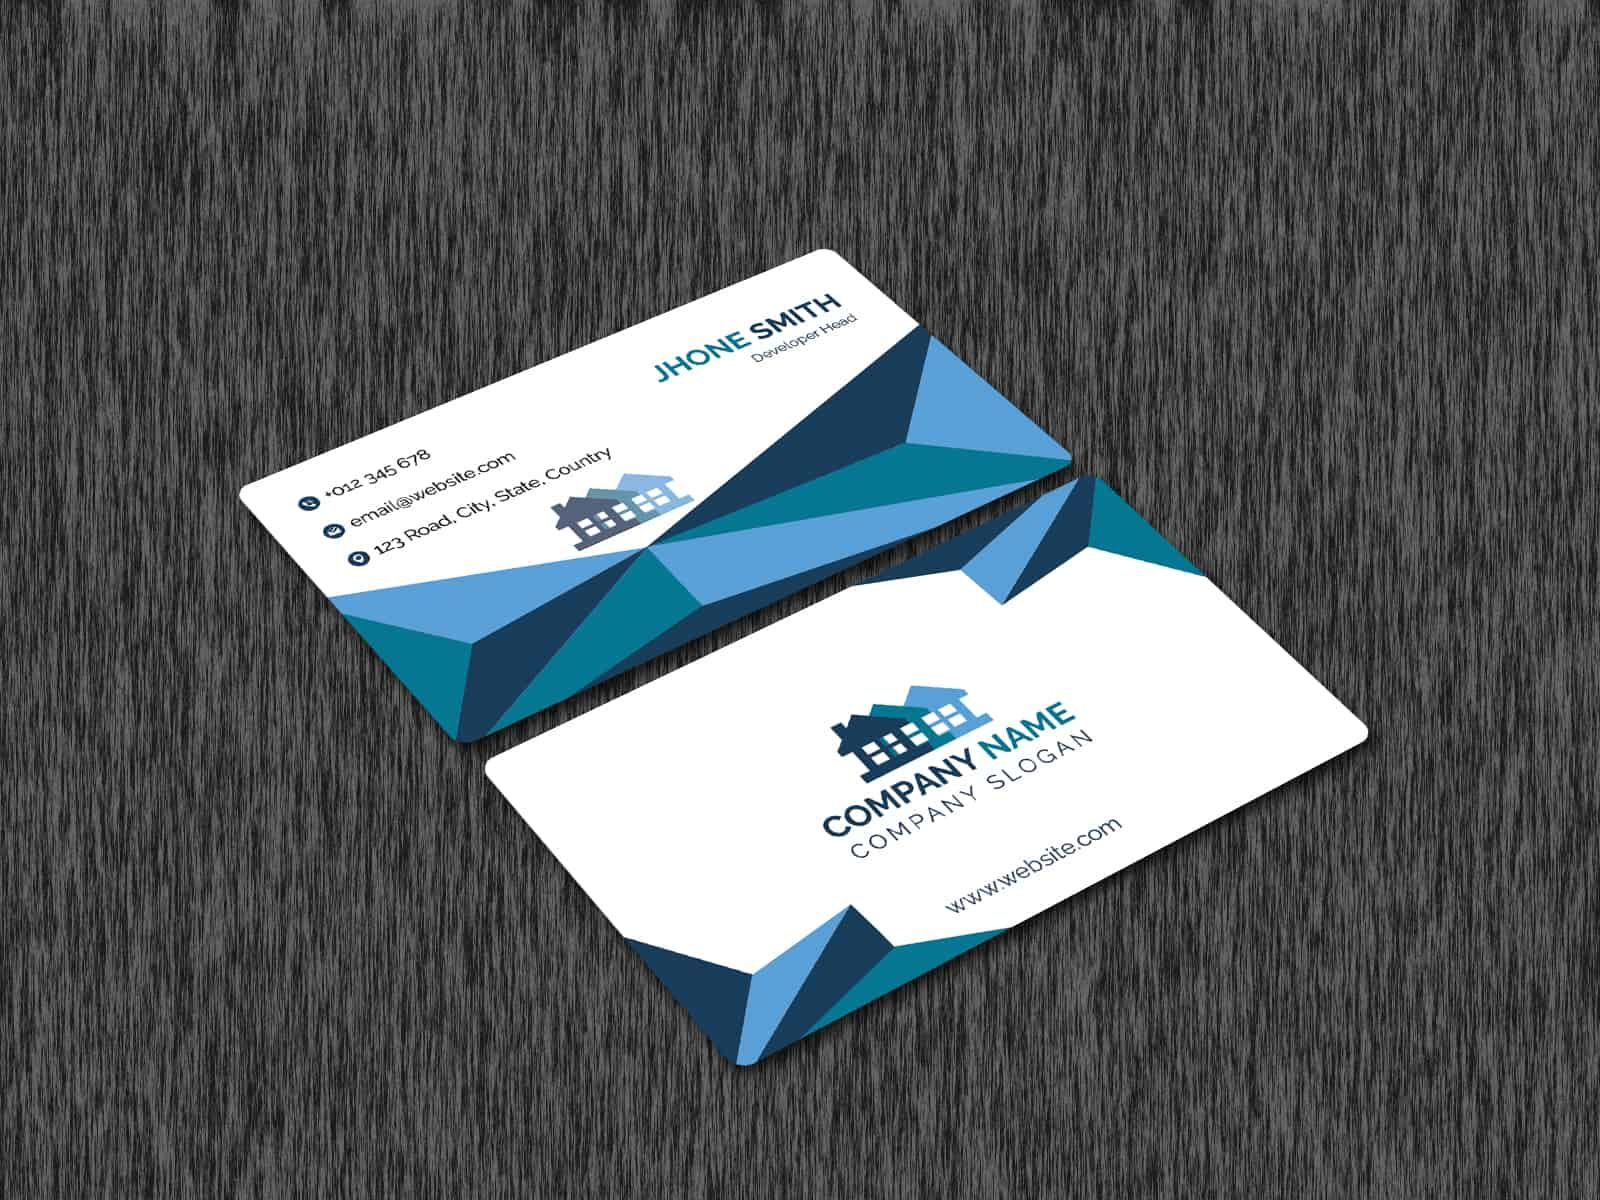 Real Estate Business Card Template Business Card Design Black Free Business Card Templates Freelance Business Card Real estate business card template